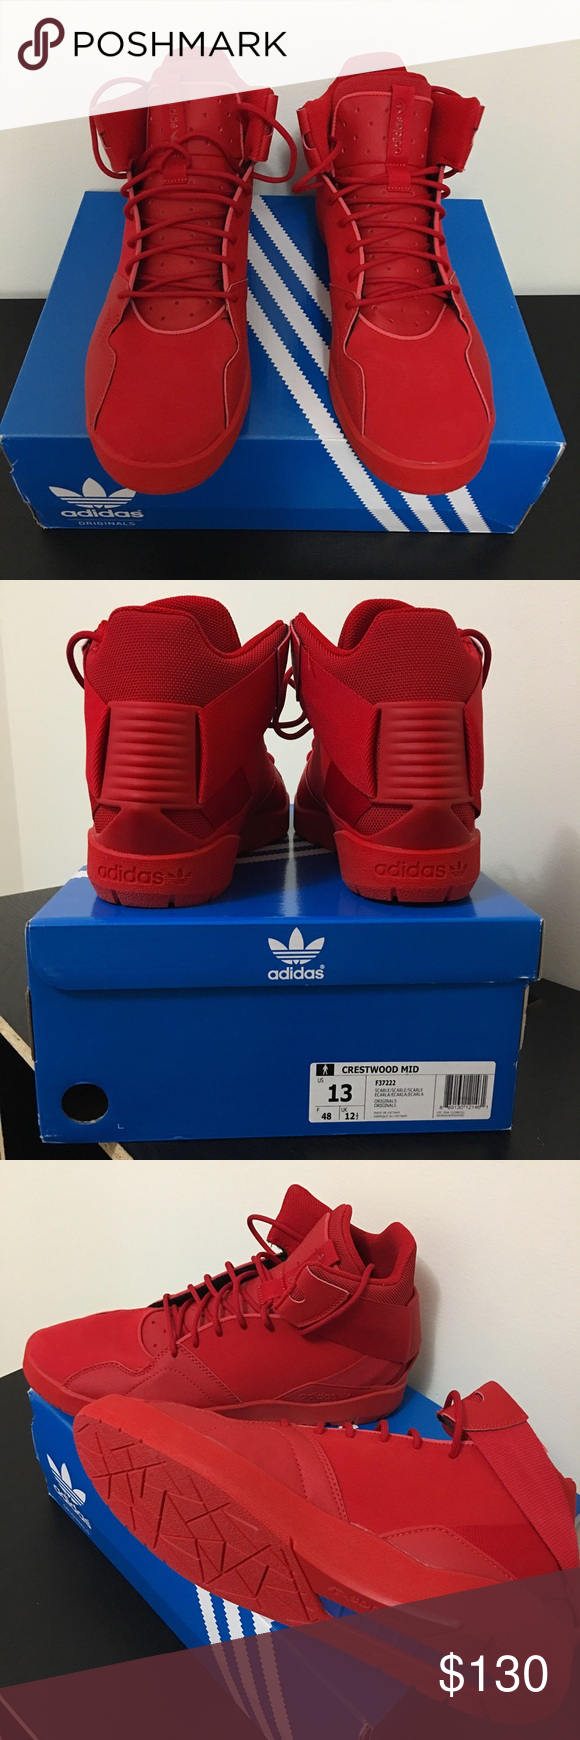 Men's Adidas Crestwood Mid NEW IN BOX